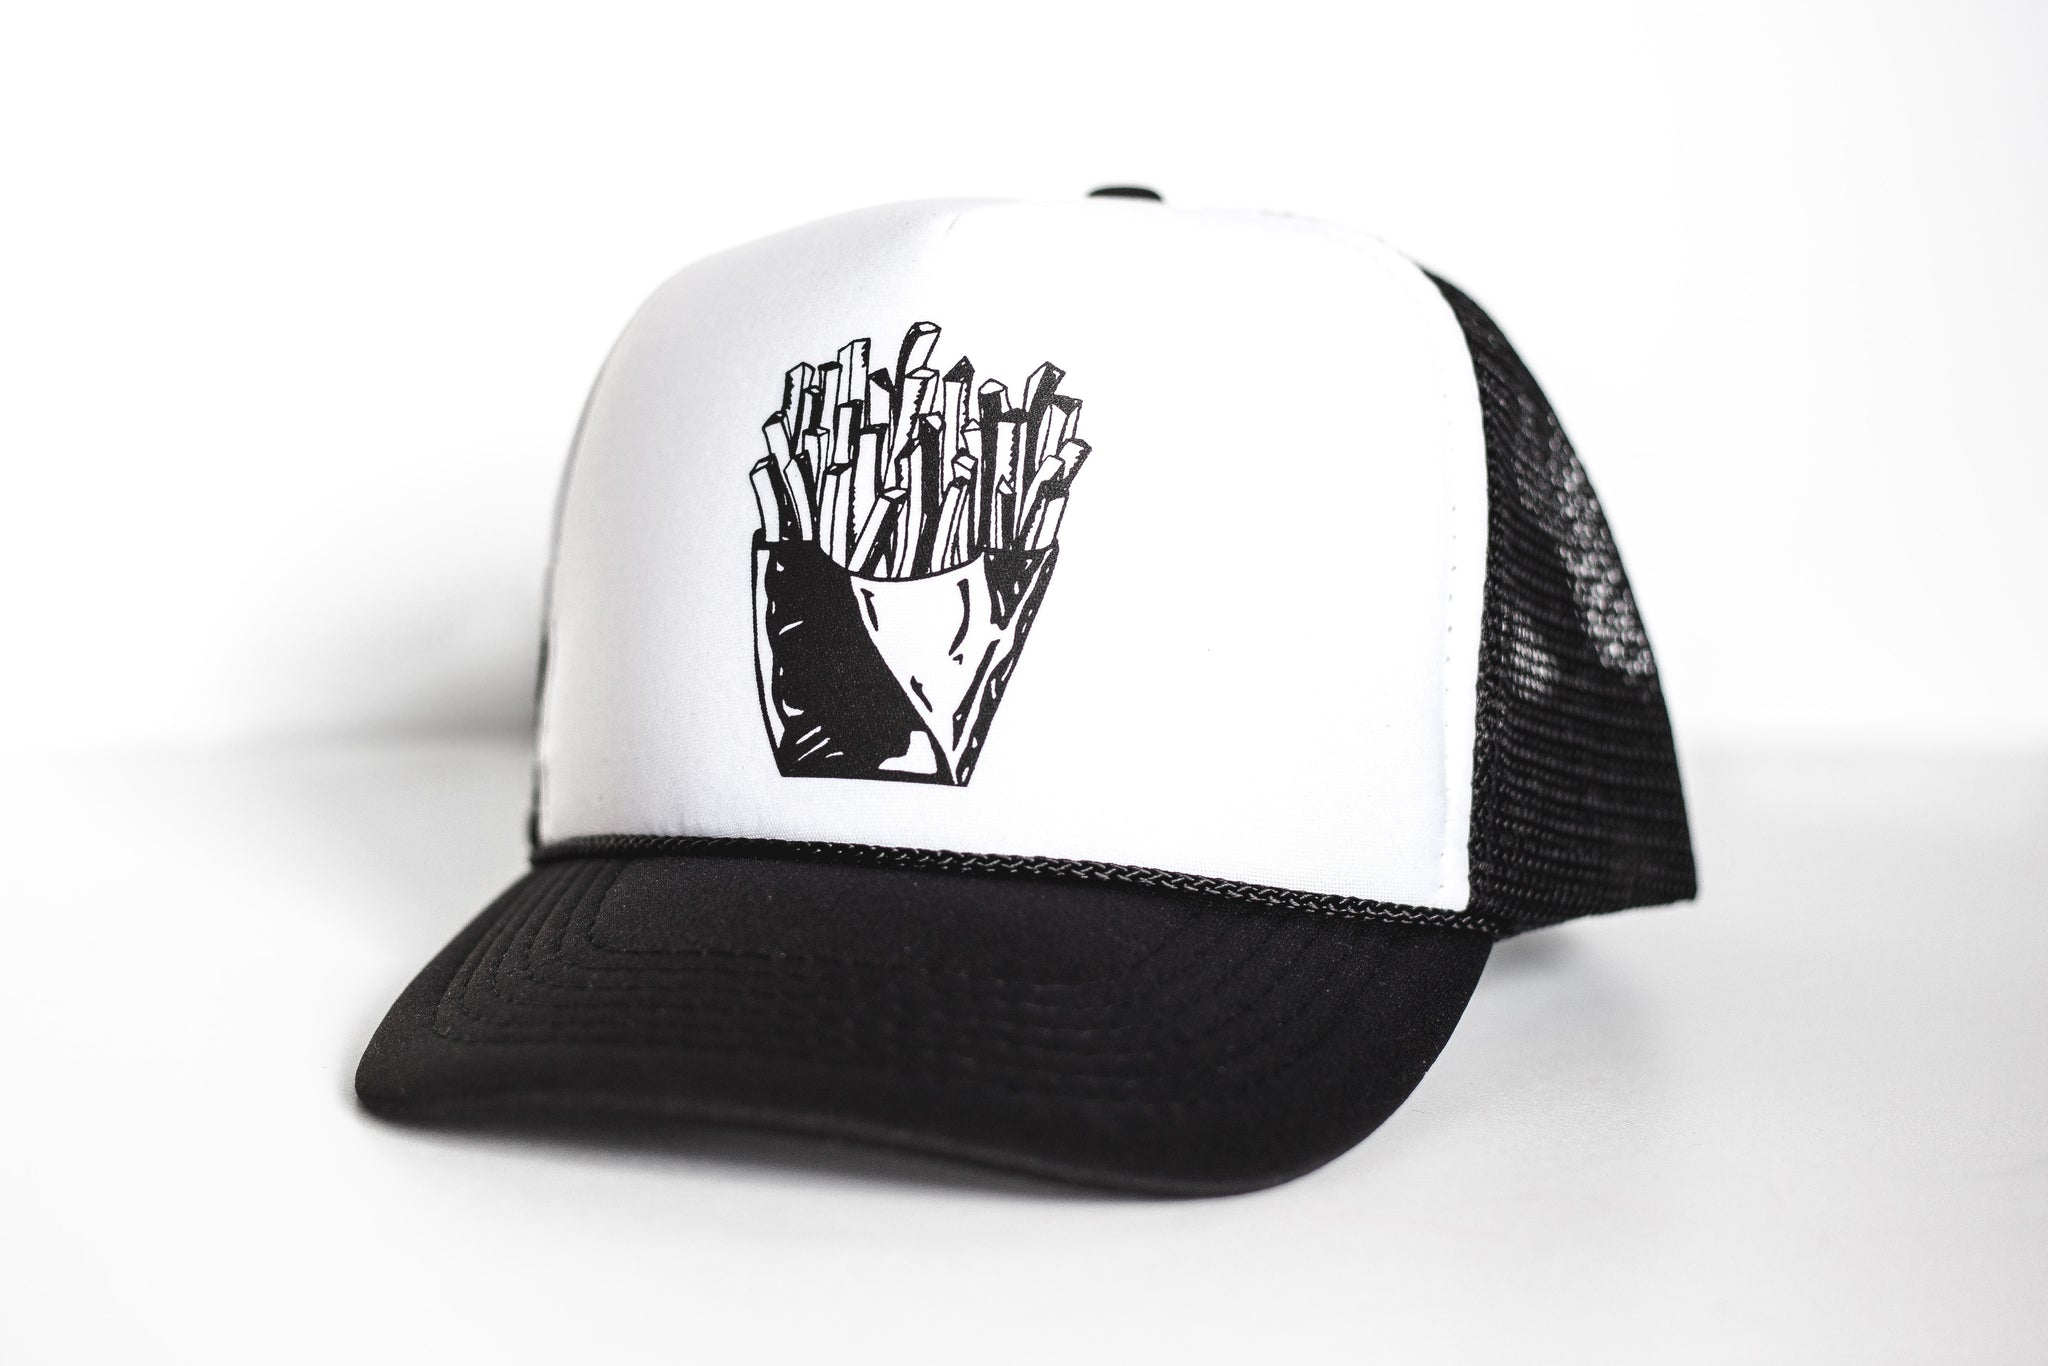 French Fries - Snapback Trucker Hat